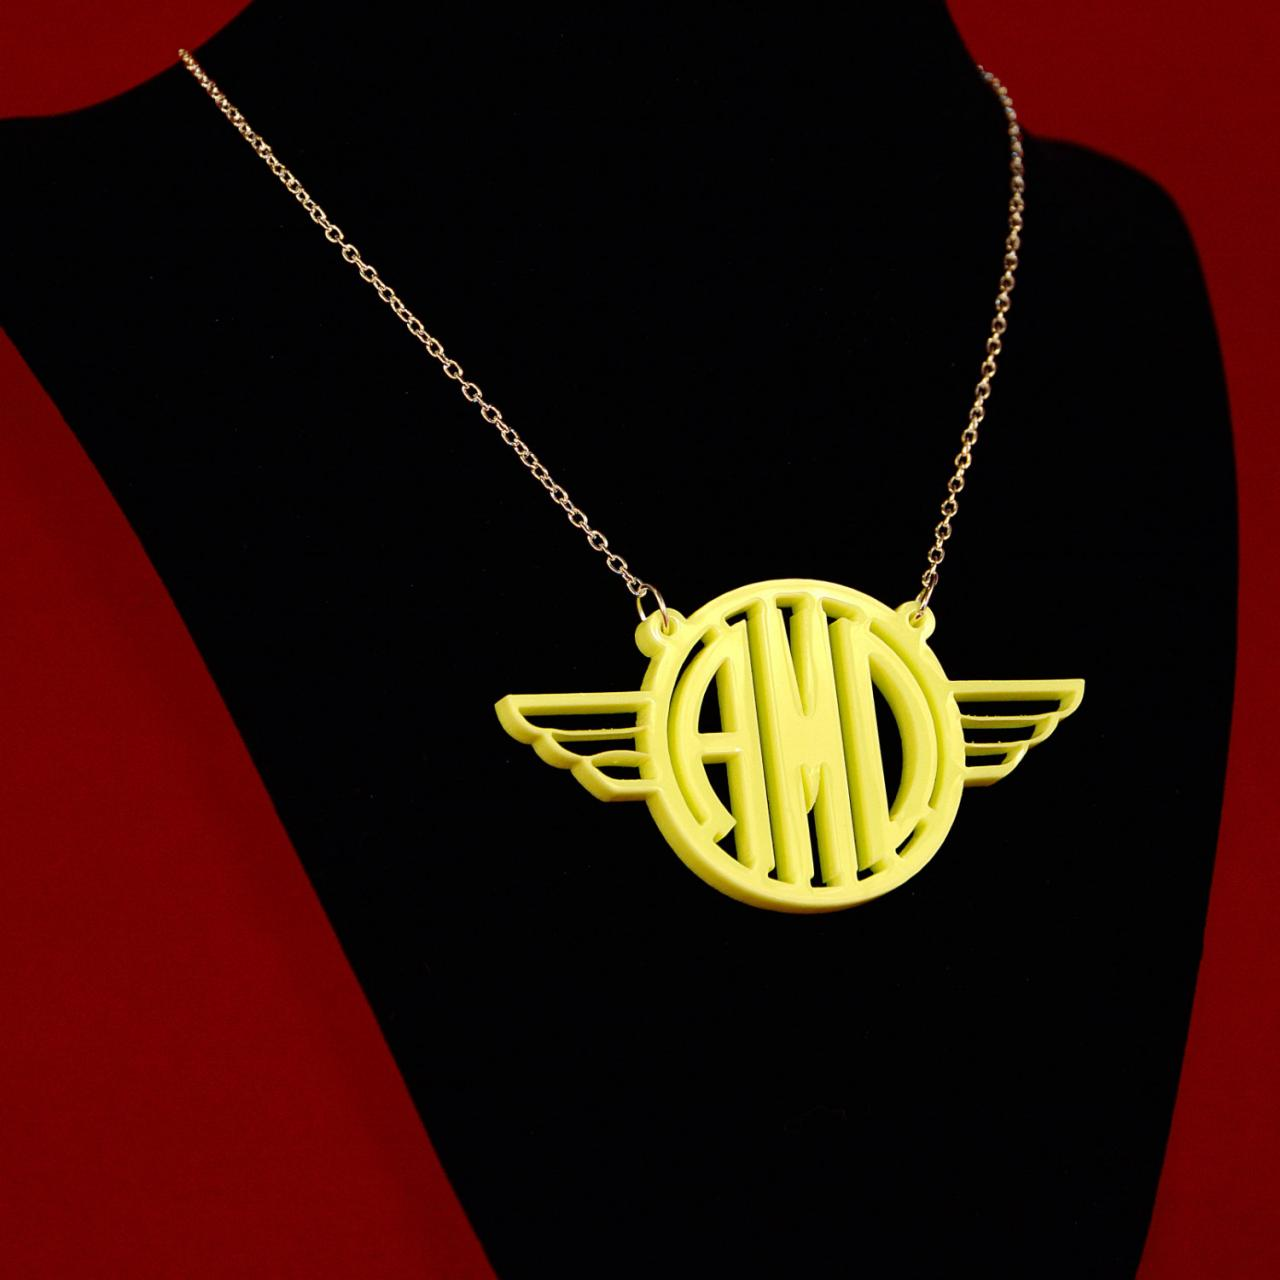 Wings Monogram Necklace Pendant Personalized Custom Made